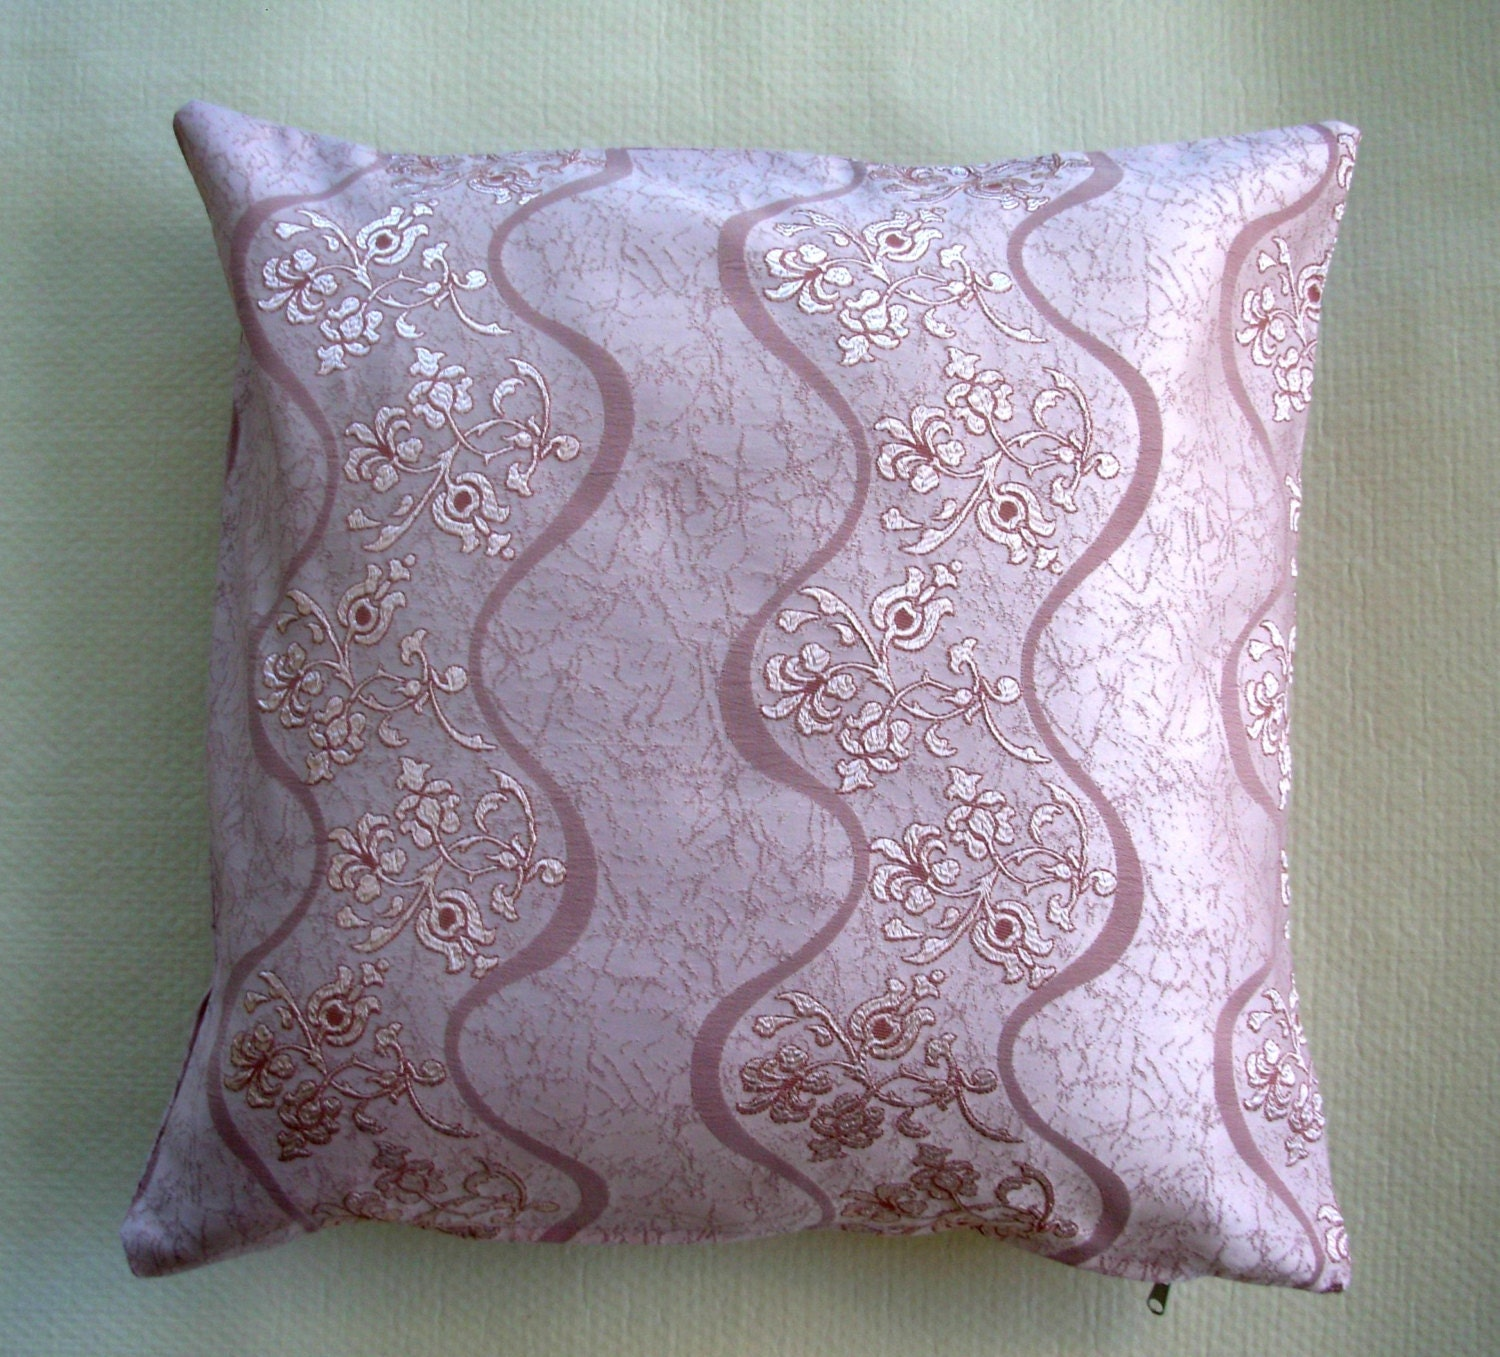 Autumn Sale. Purchase 2 1 Pillow Covers for only 30.42